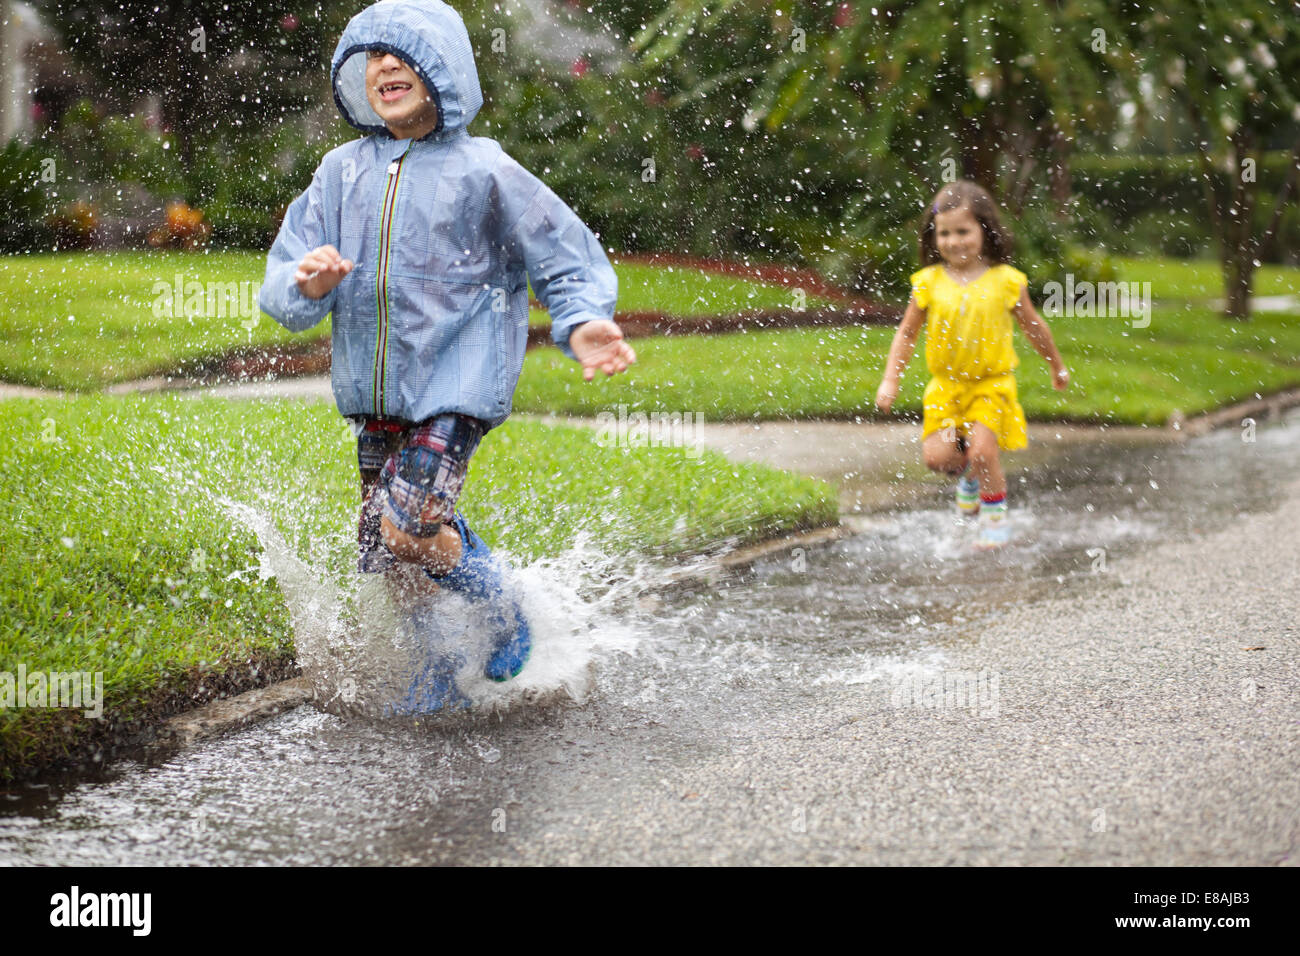 Boy and sister wearing rubber boots running and splashing in rain puddle - Stock Image